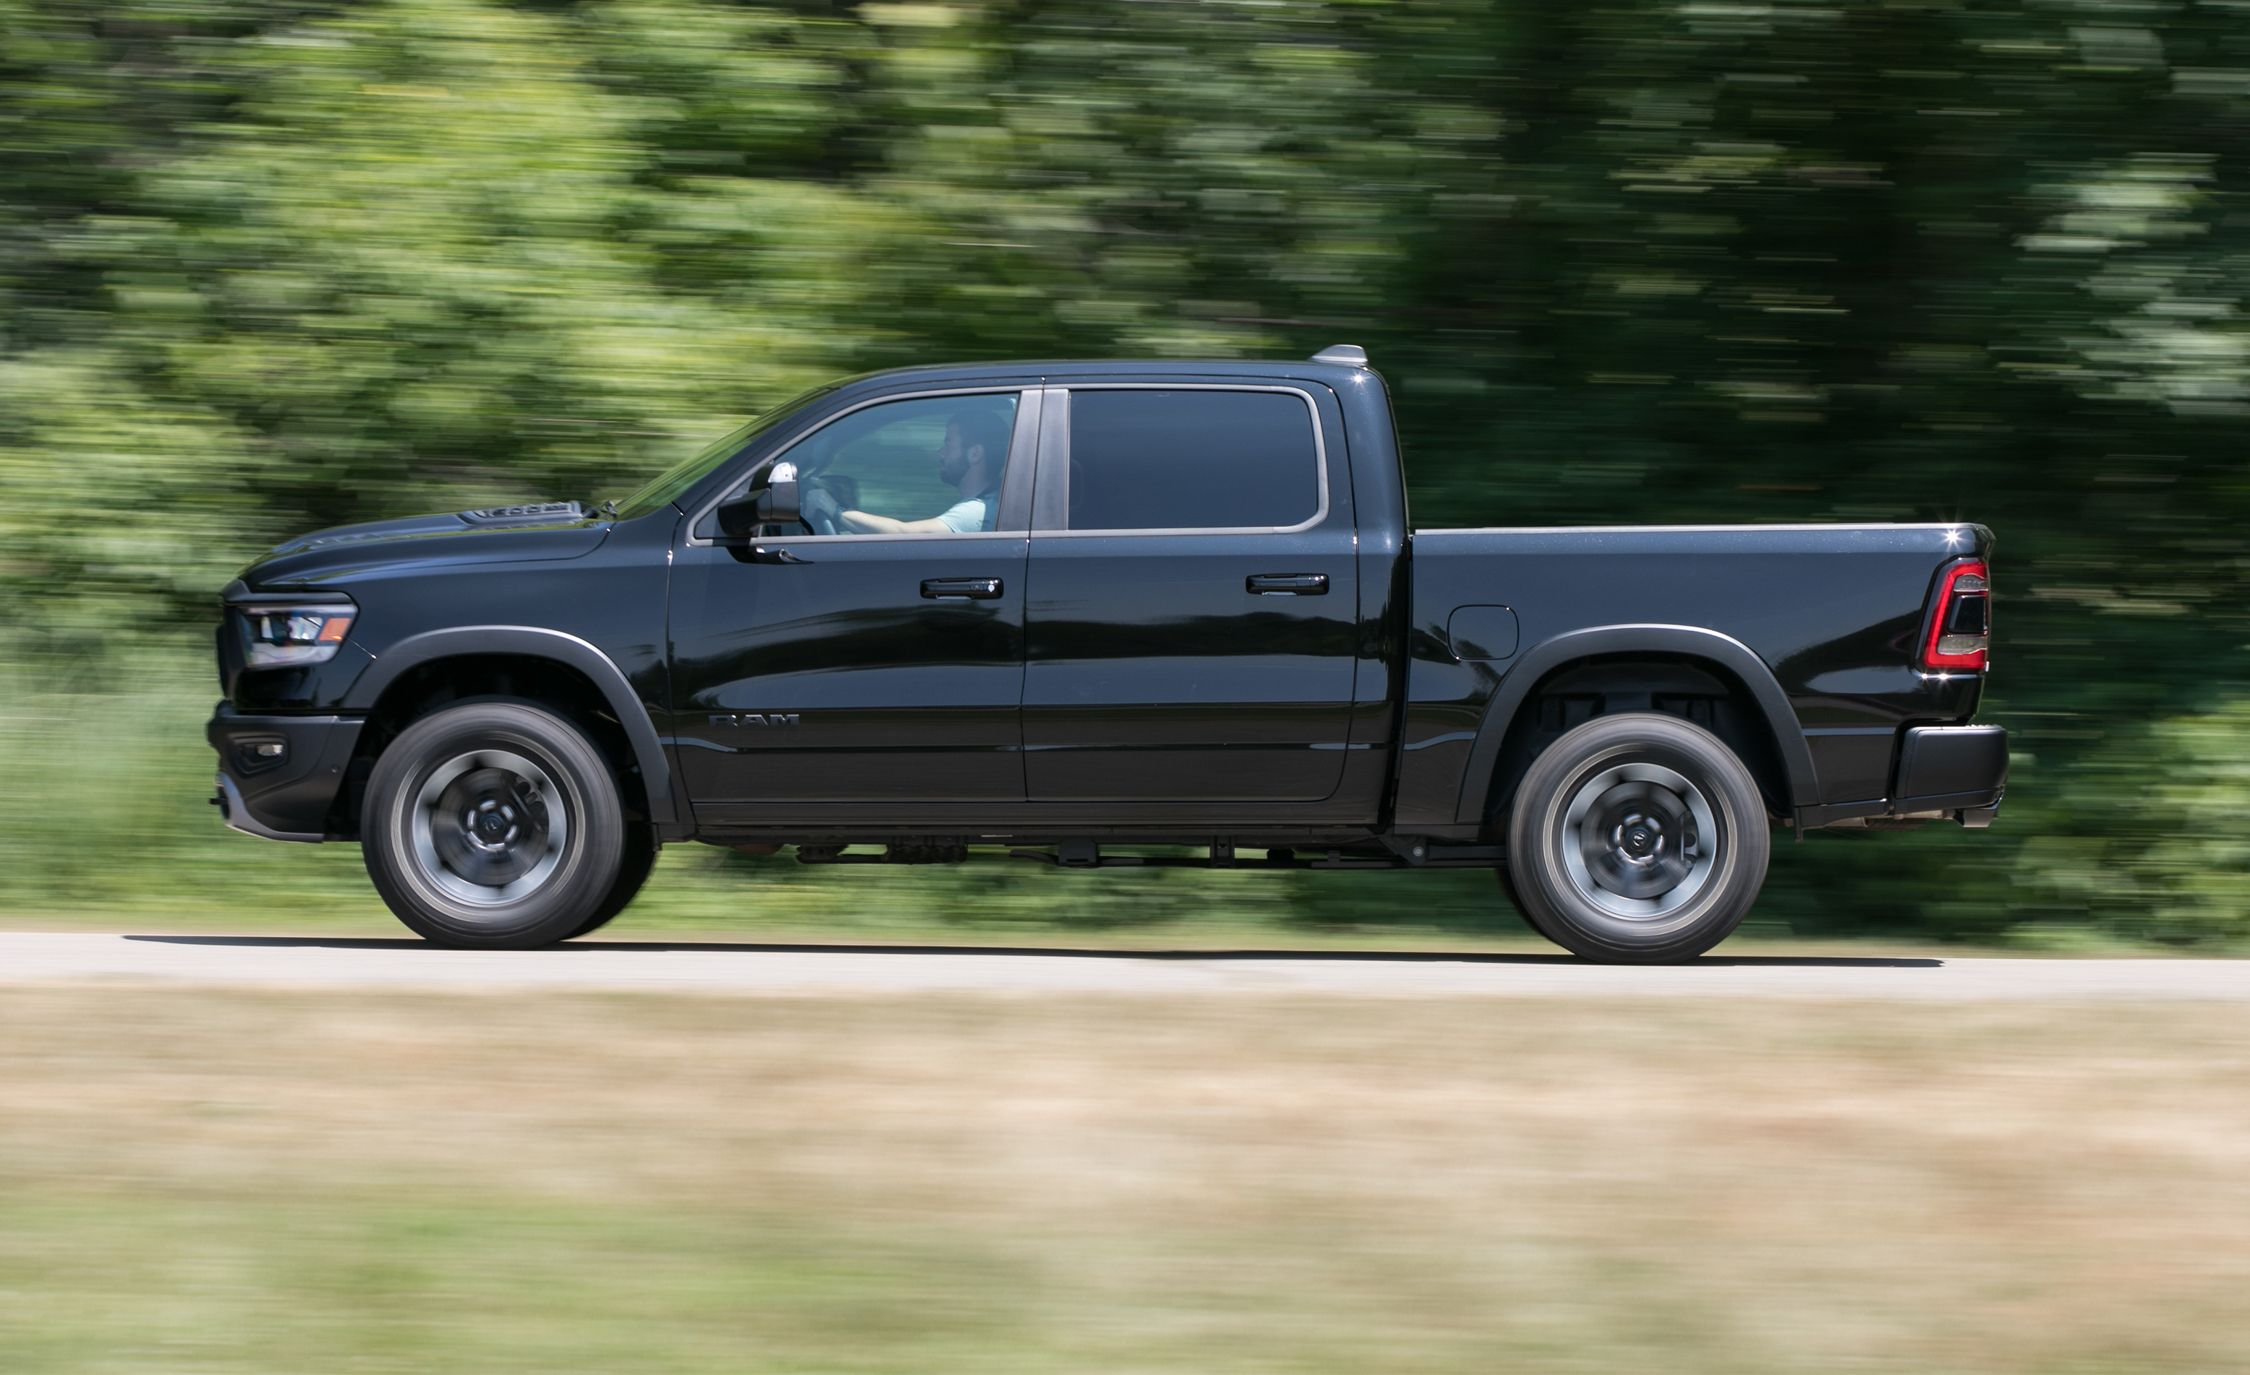 Ram 1500 Ecodiesel Review >> 2019 Ram 1500 Rebel – A Better Off-Road Pickup